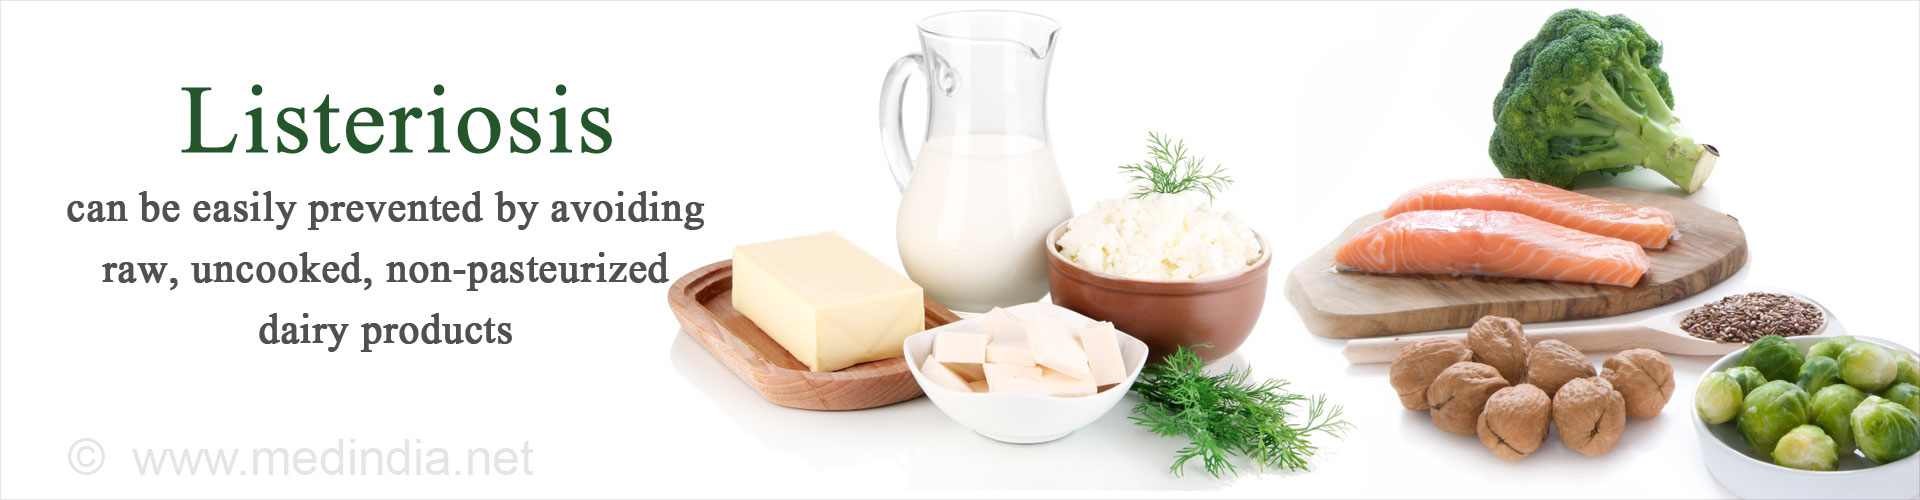 Listeriosis can be easily prevented by avoiding raw, uncooked, non pasteurized dairy products